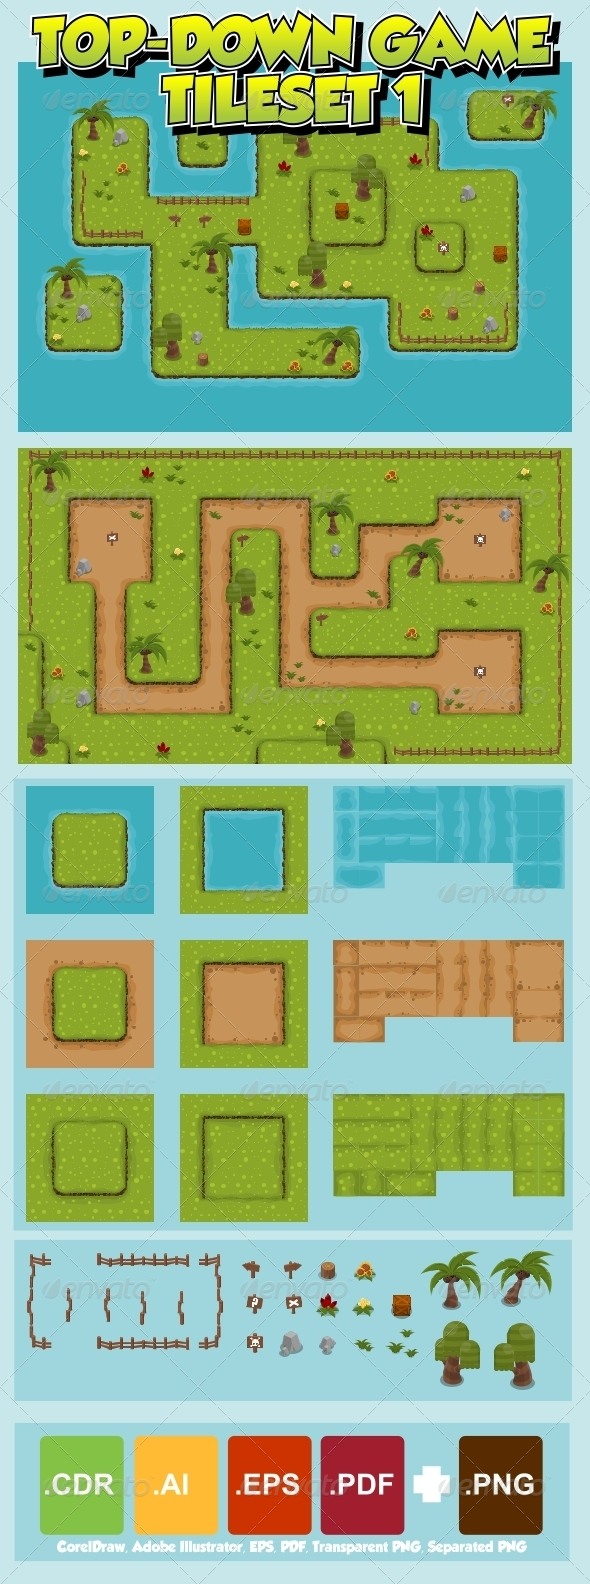 GraphicRiver Top-Down Game Tileset 1 6171284